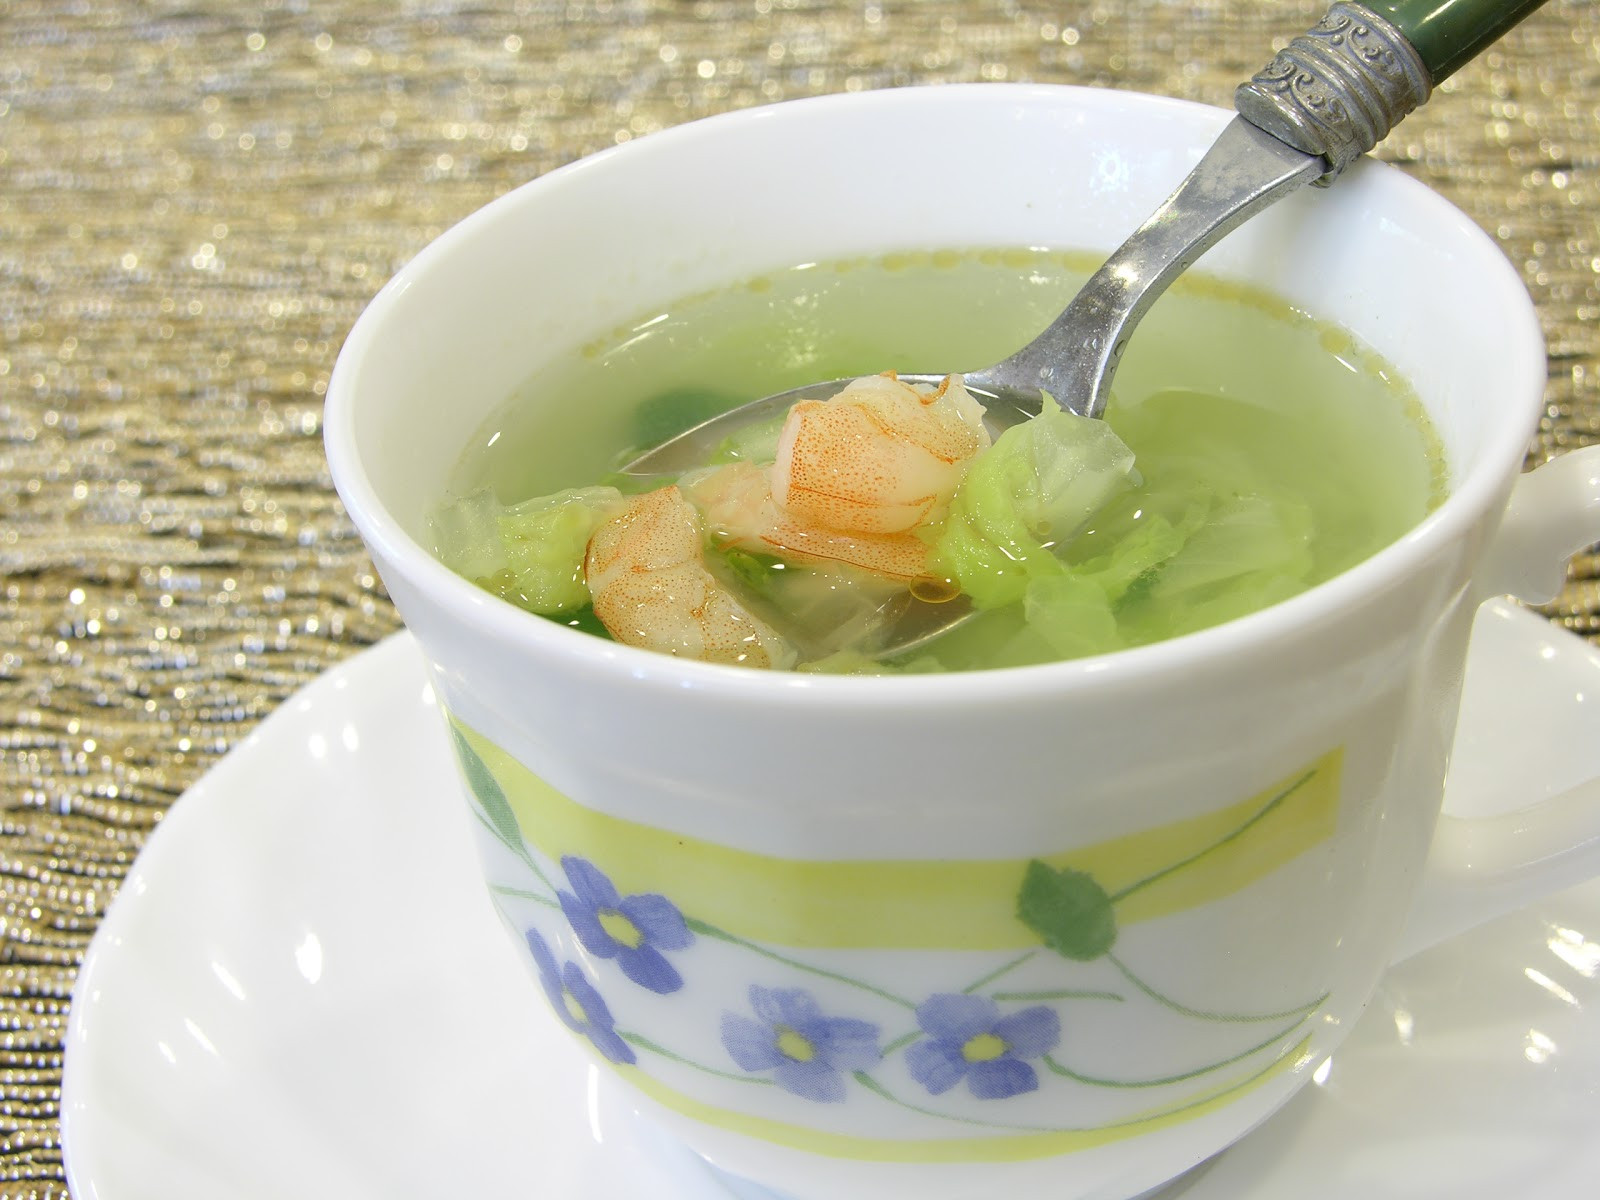 Napa Cabbage Soup  Simple Napa Cabbage Soup with Shrimp in 15 Minutes 虾仁白菜汤